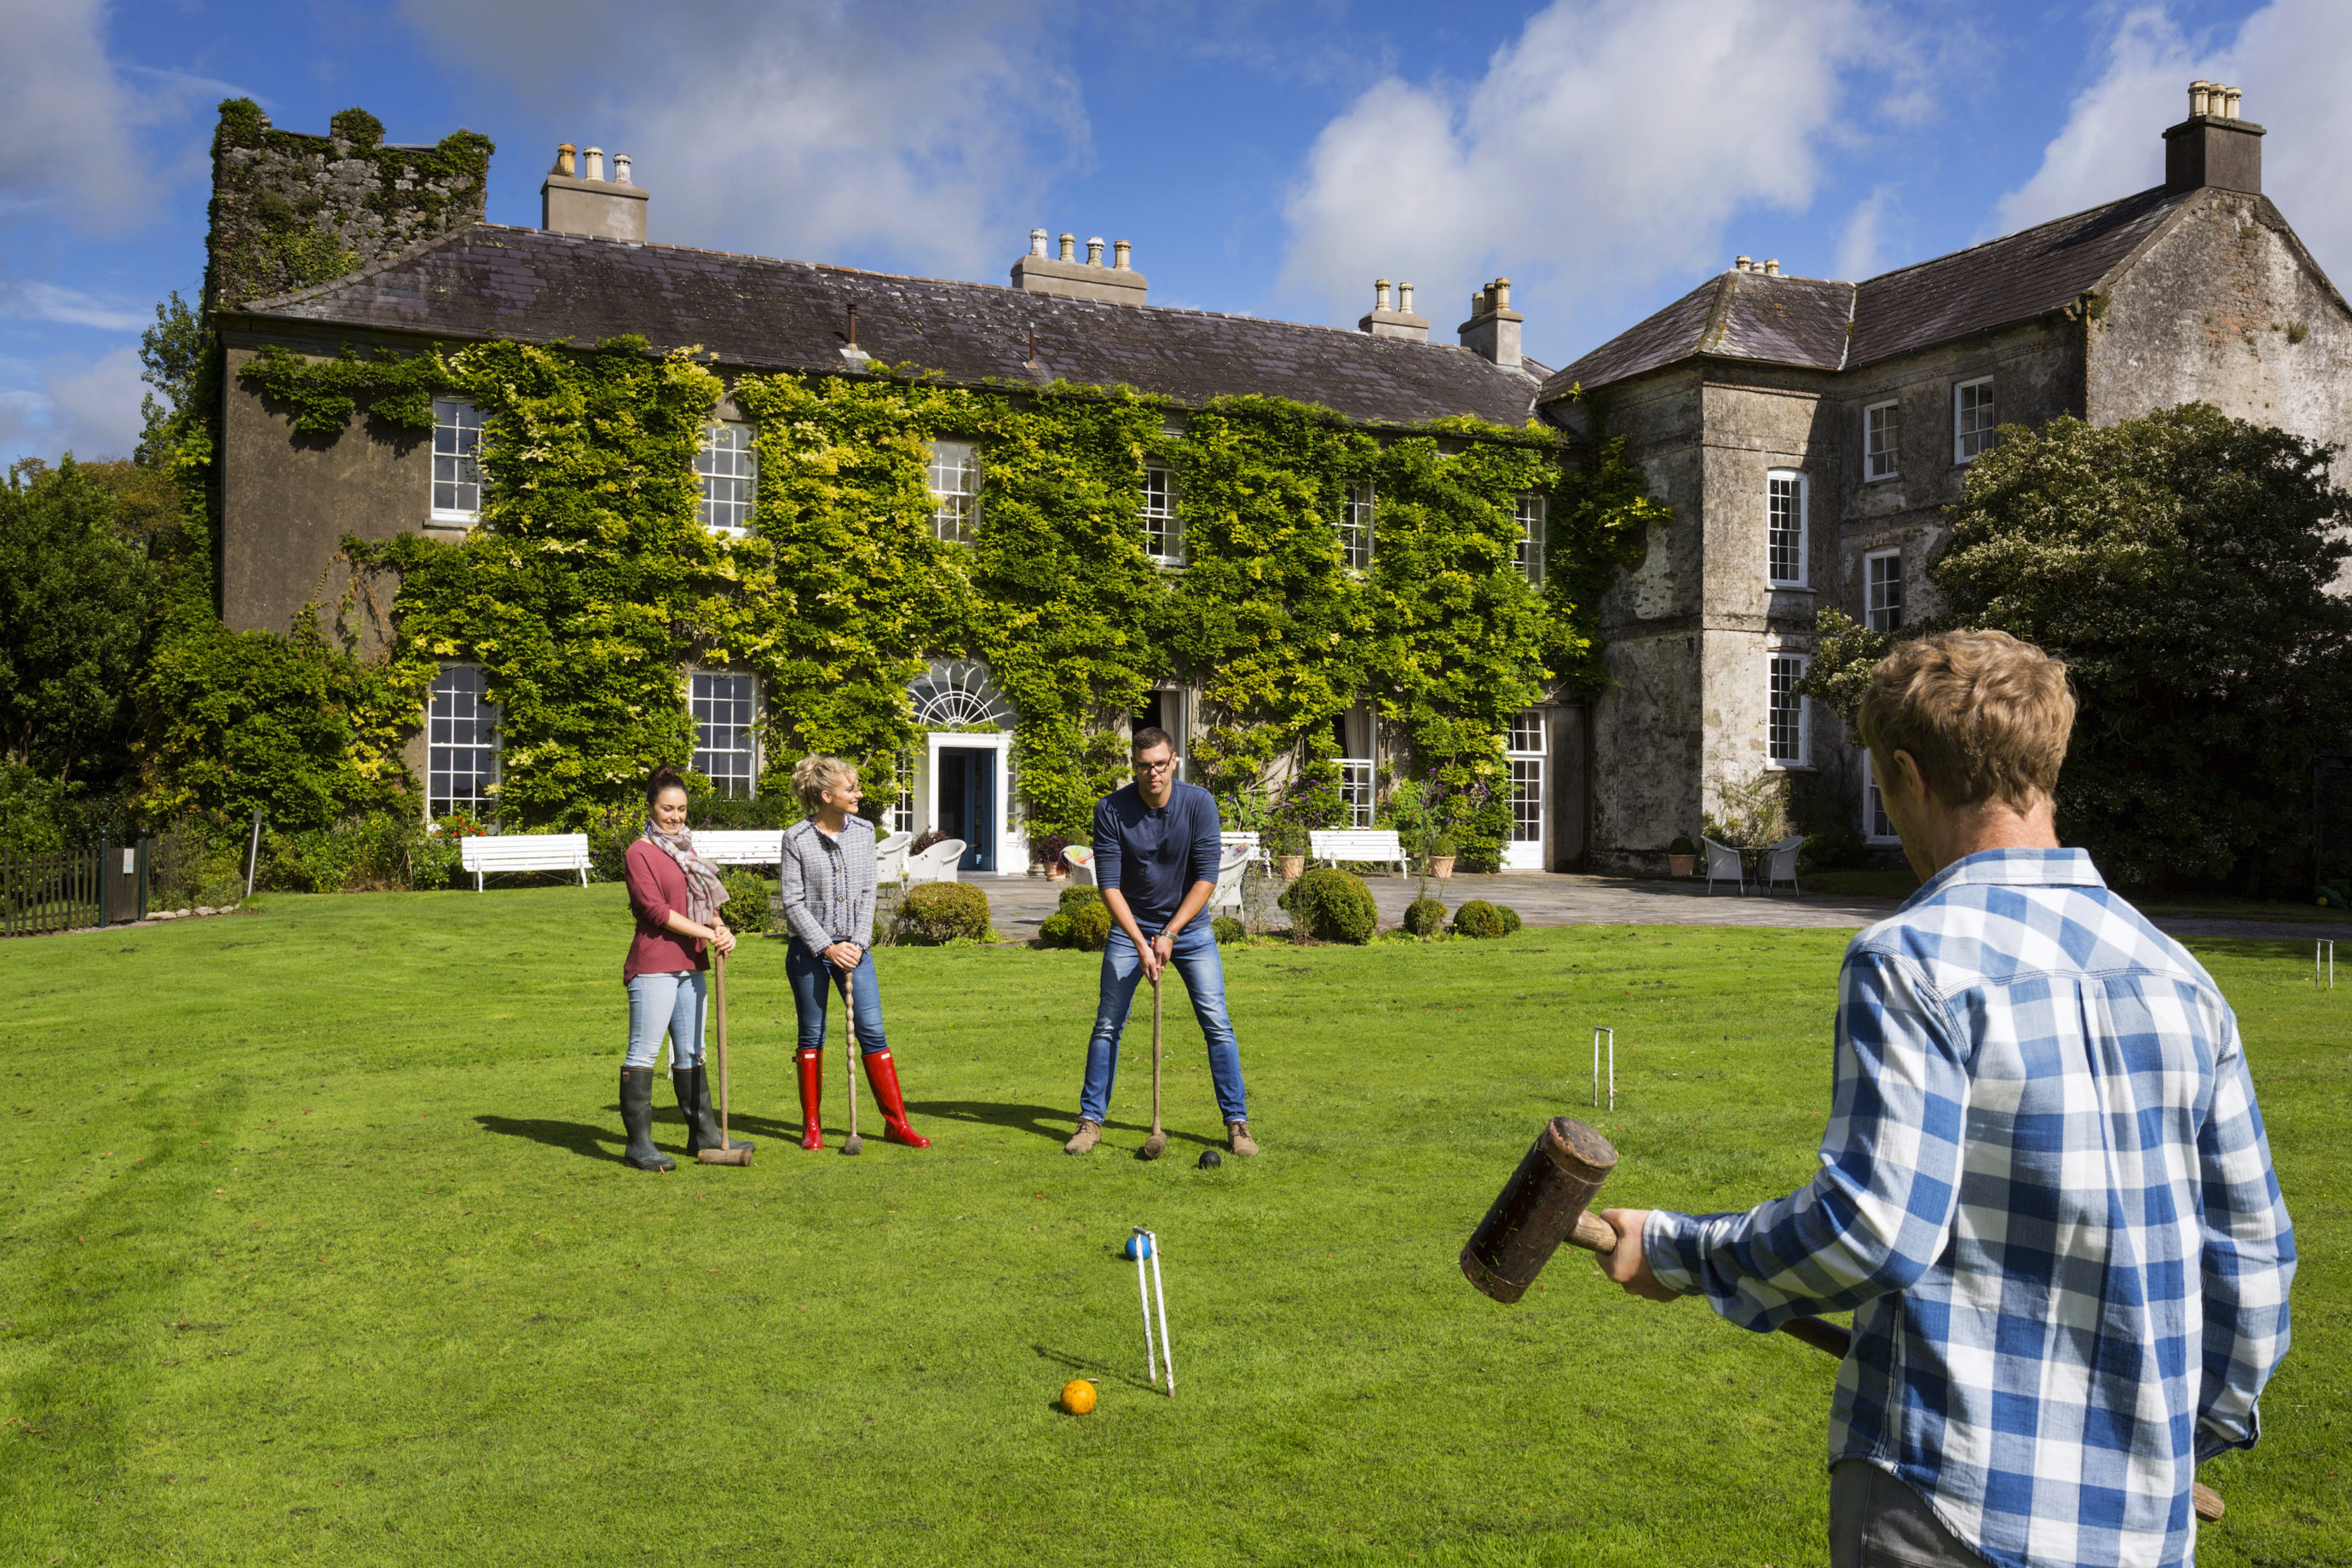 Croquet at Ballymaloe House